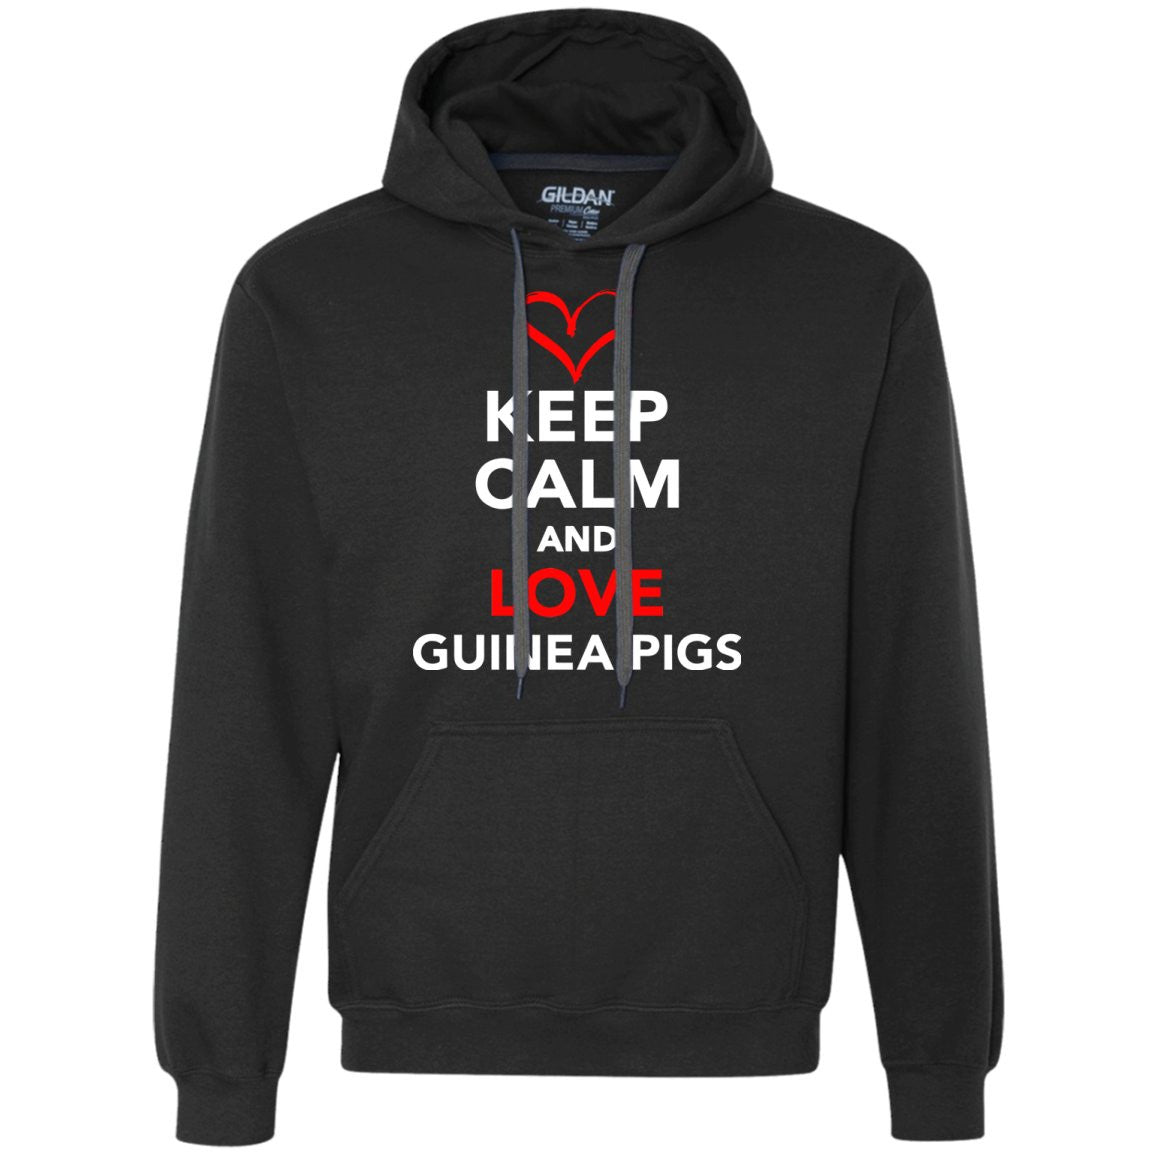 Keep Calm And Love Guinea Pigs  Heavyweight Pullover Fleece Sweatshirt